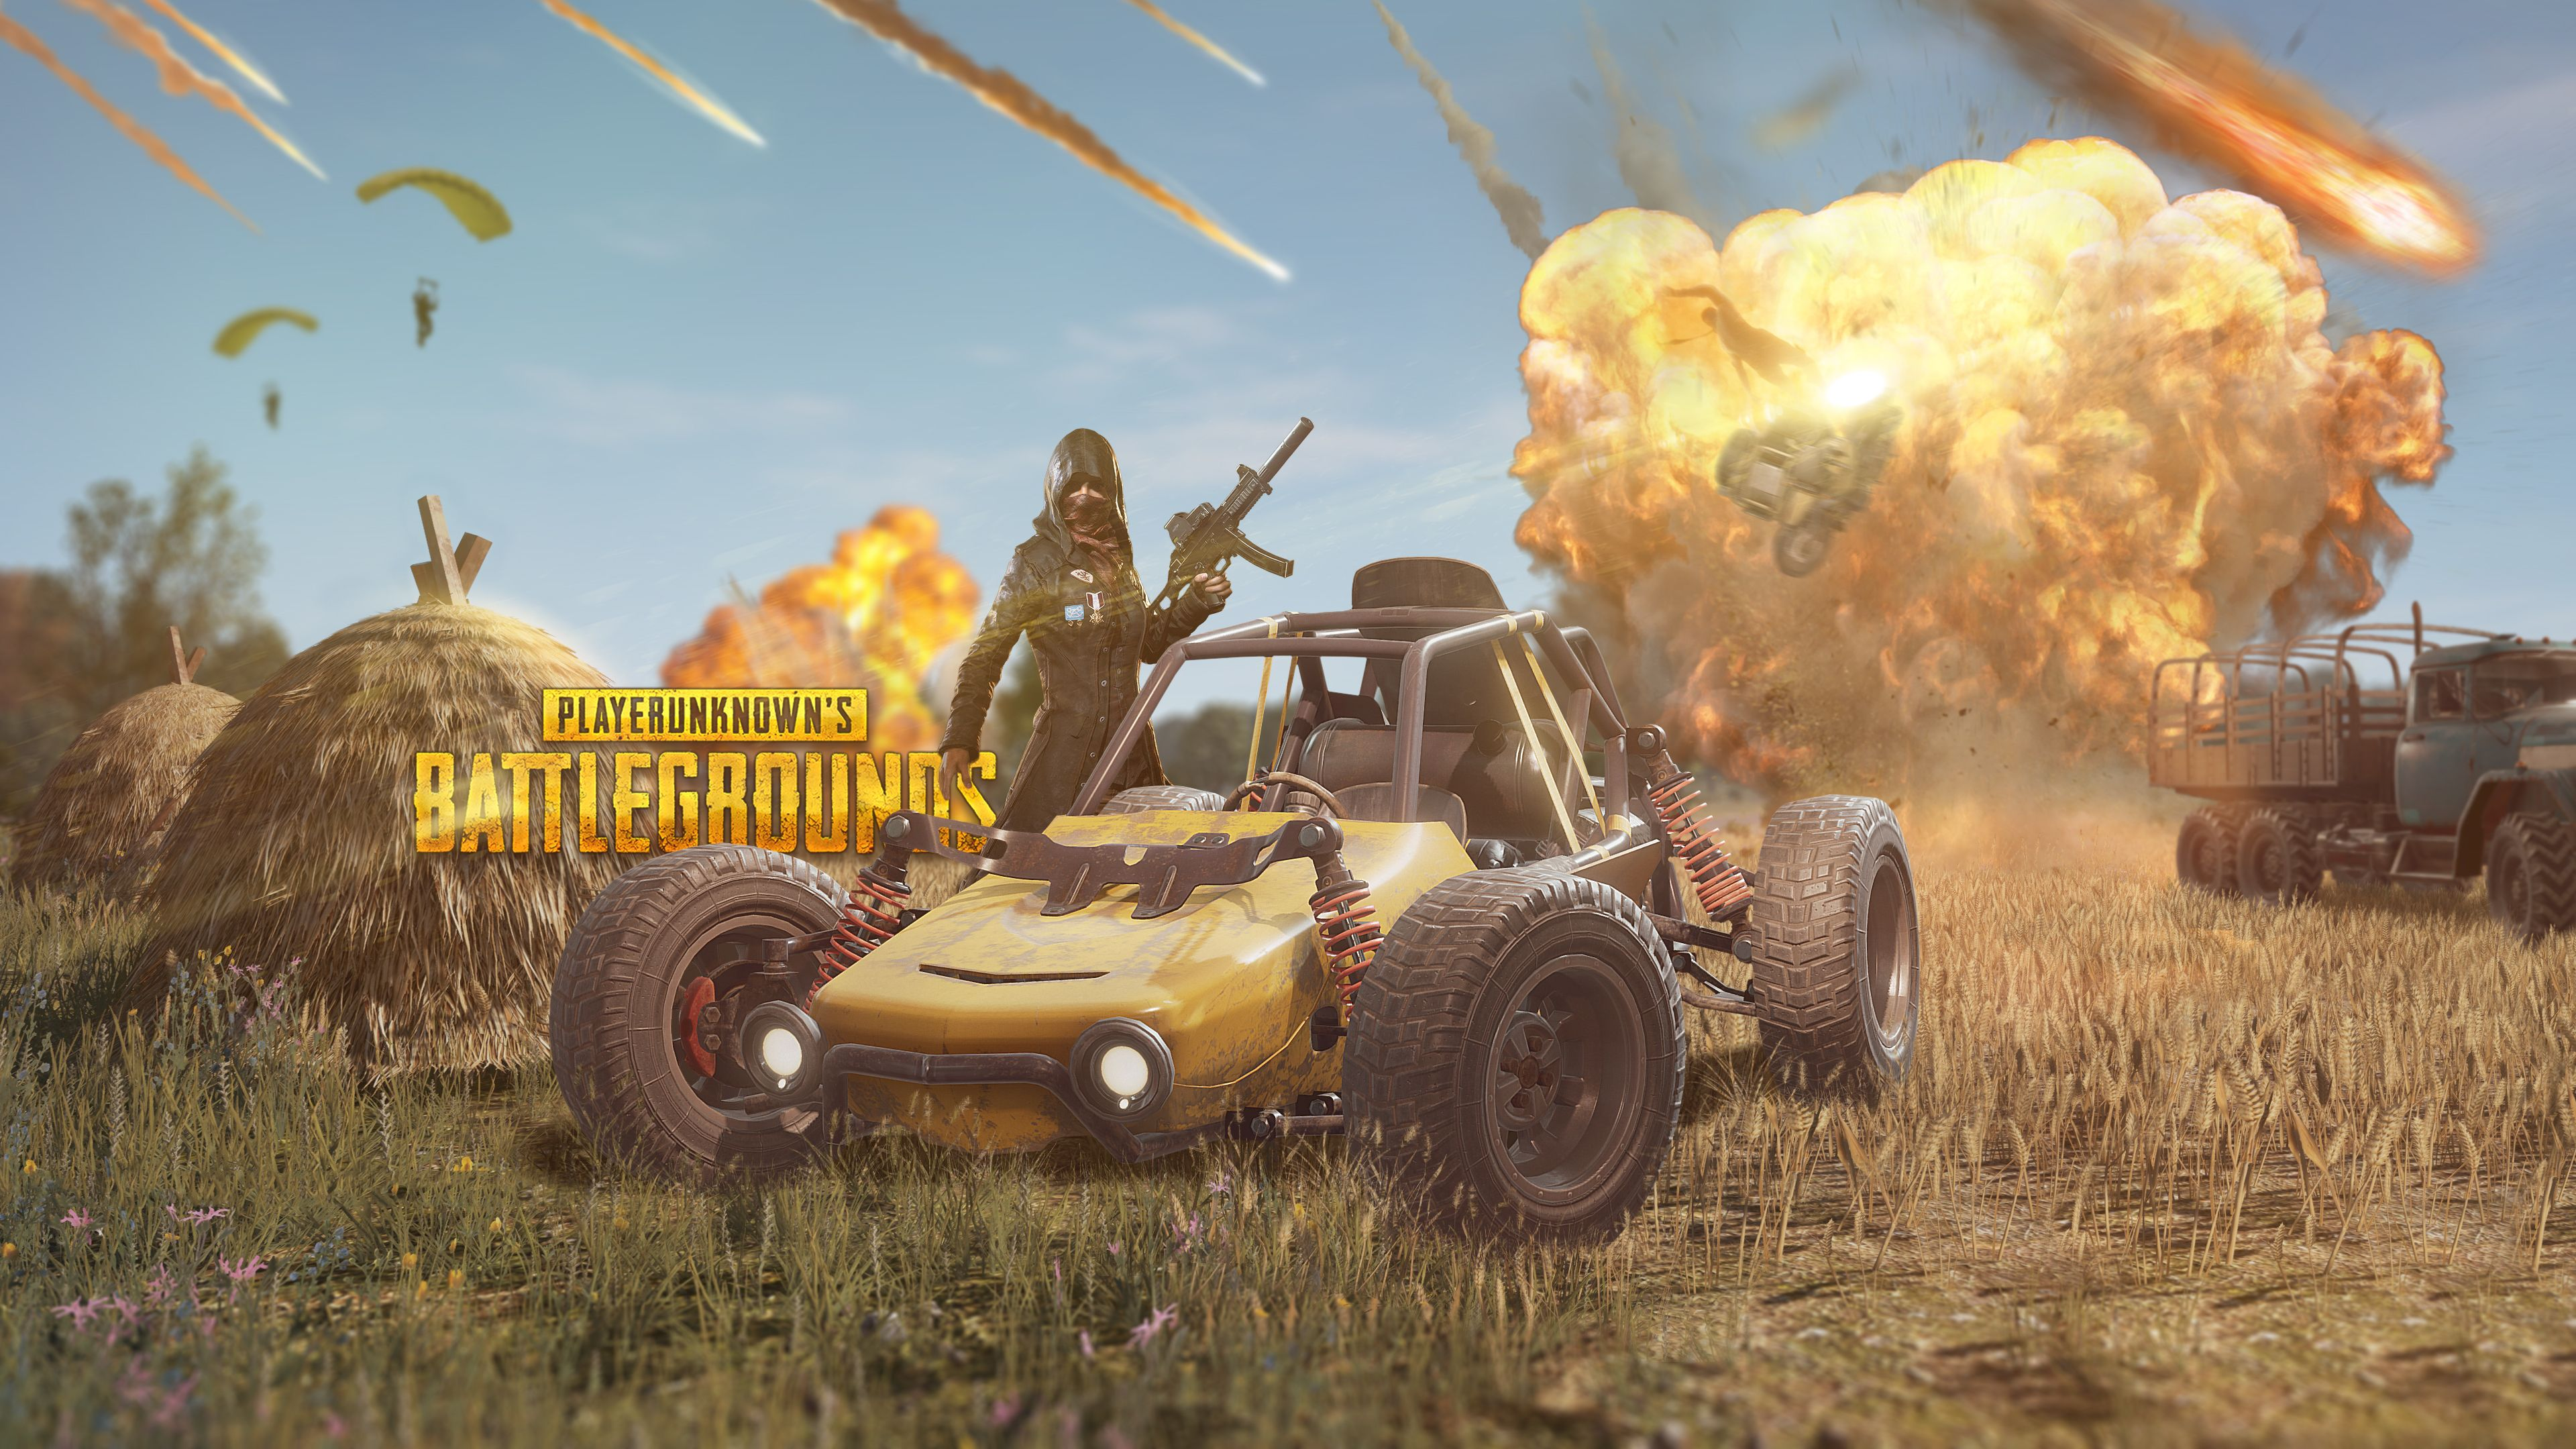 4k playerunknowns battlegrounds wallpaper 64179